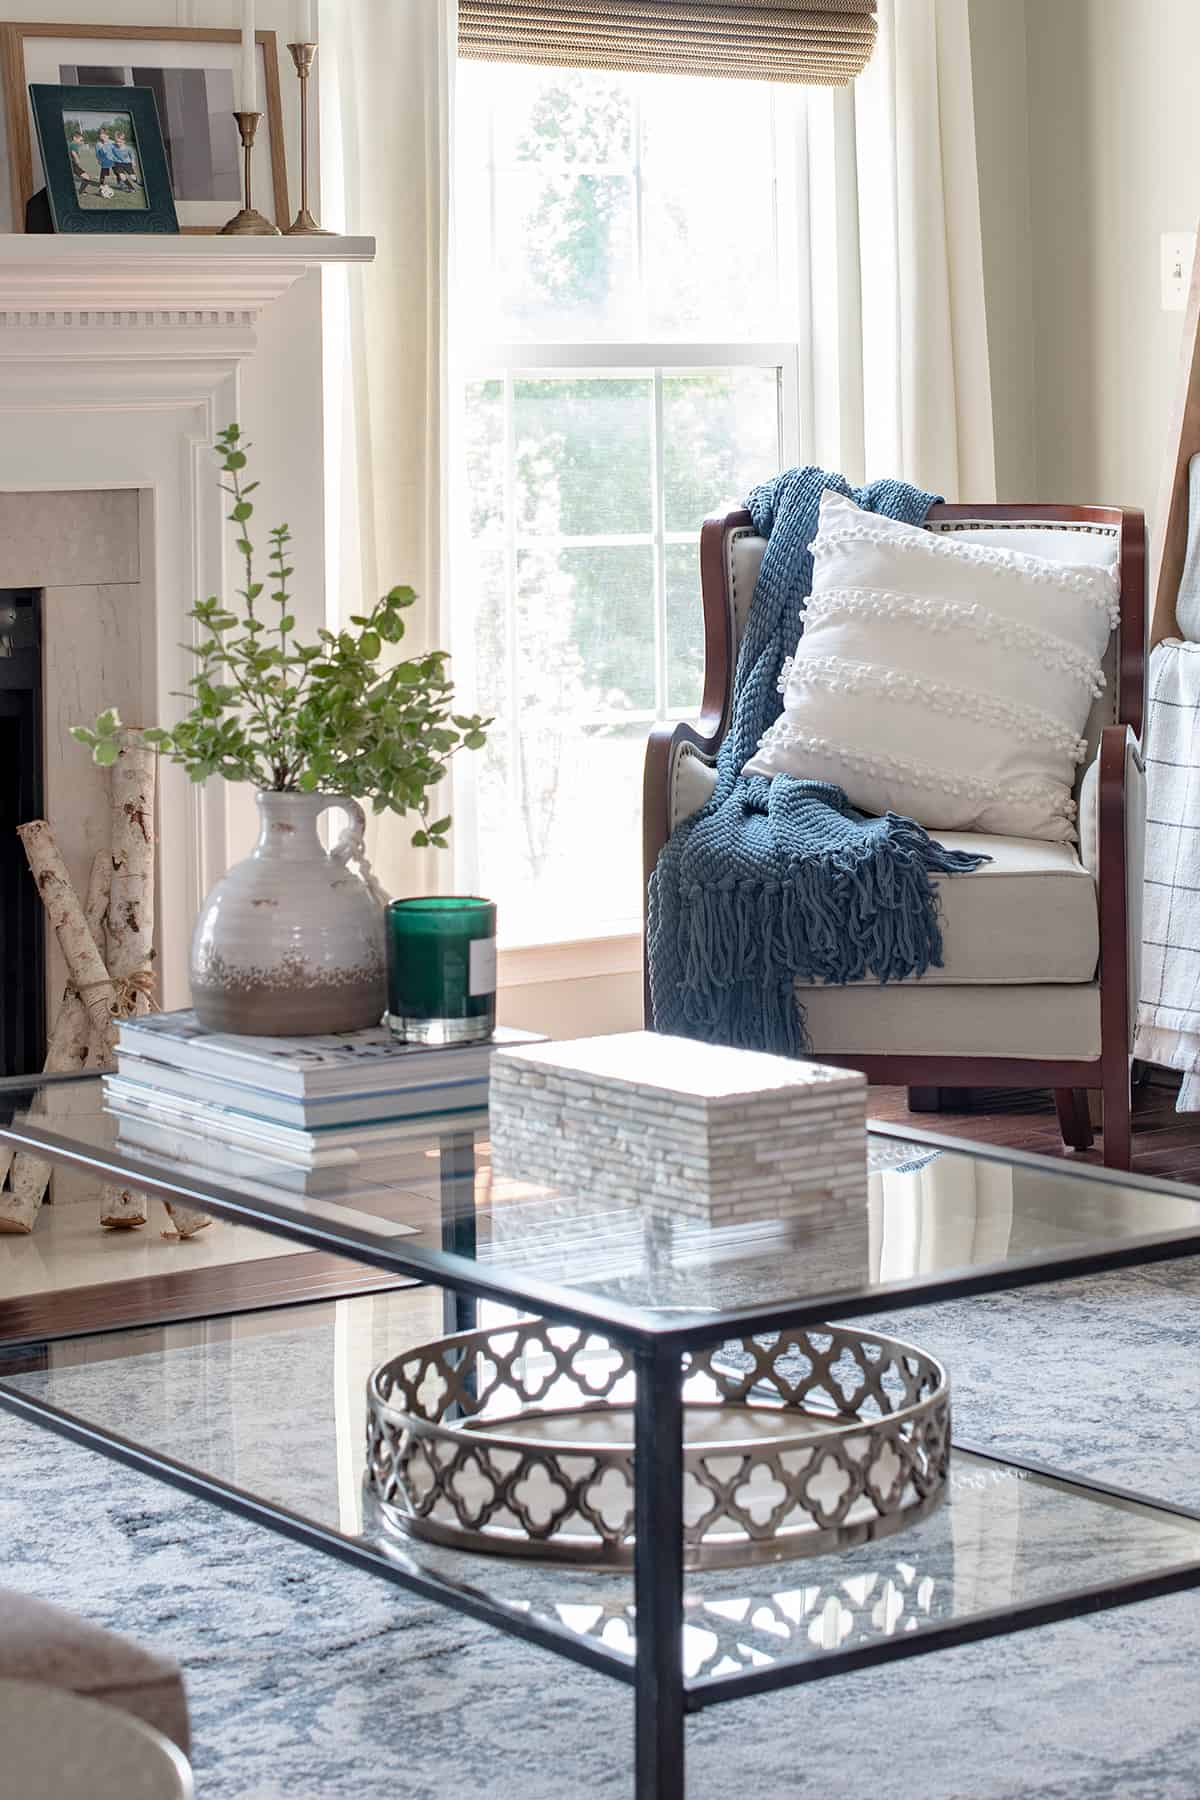 Coffee table with decor items and reading nook in front of a window.